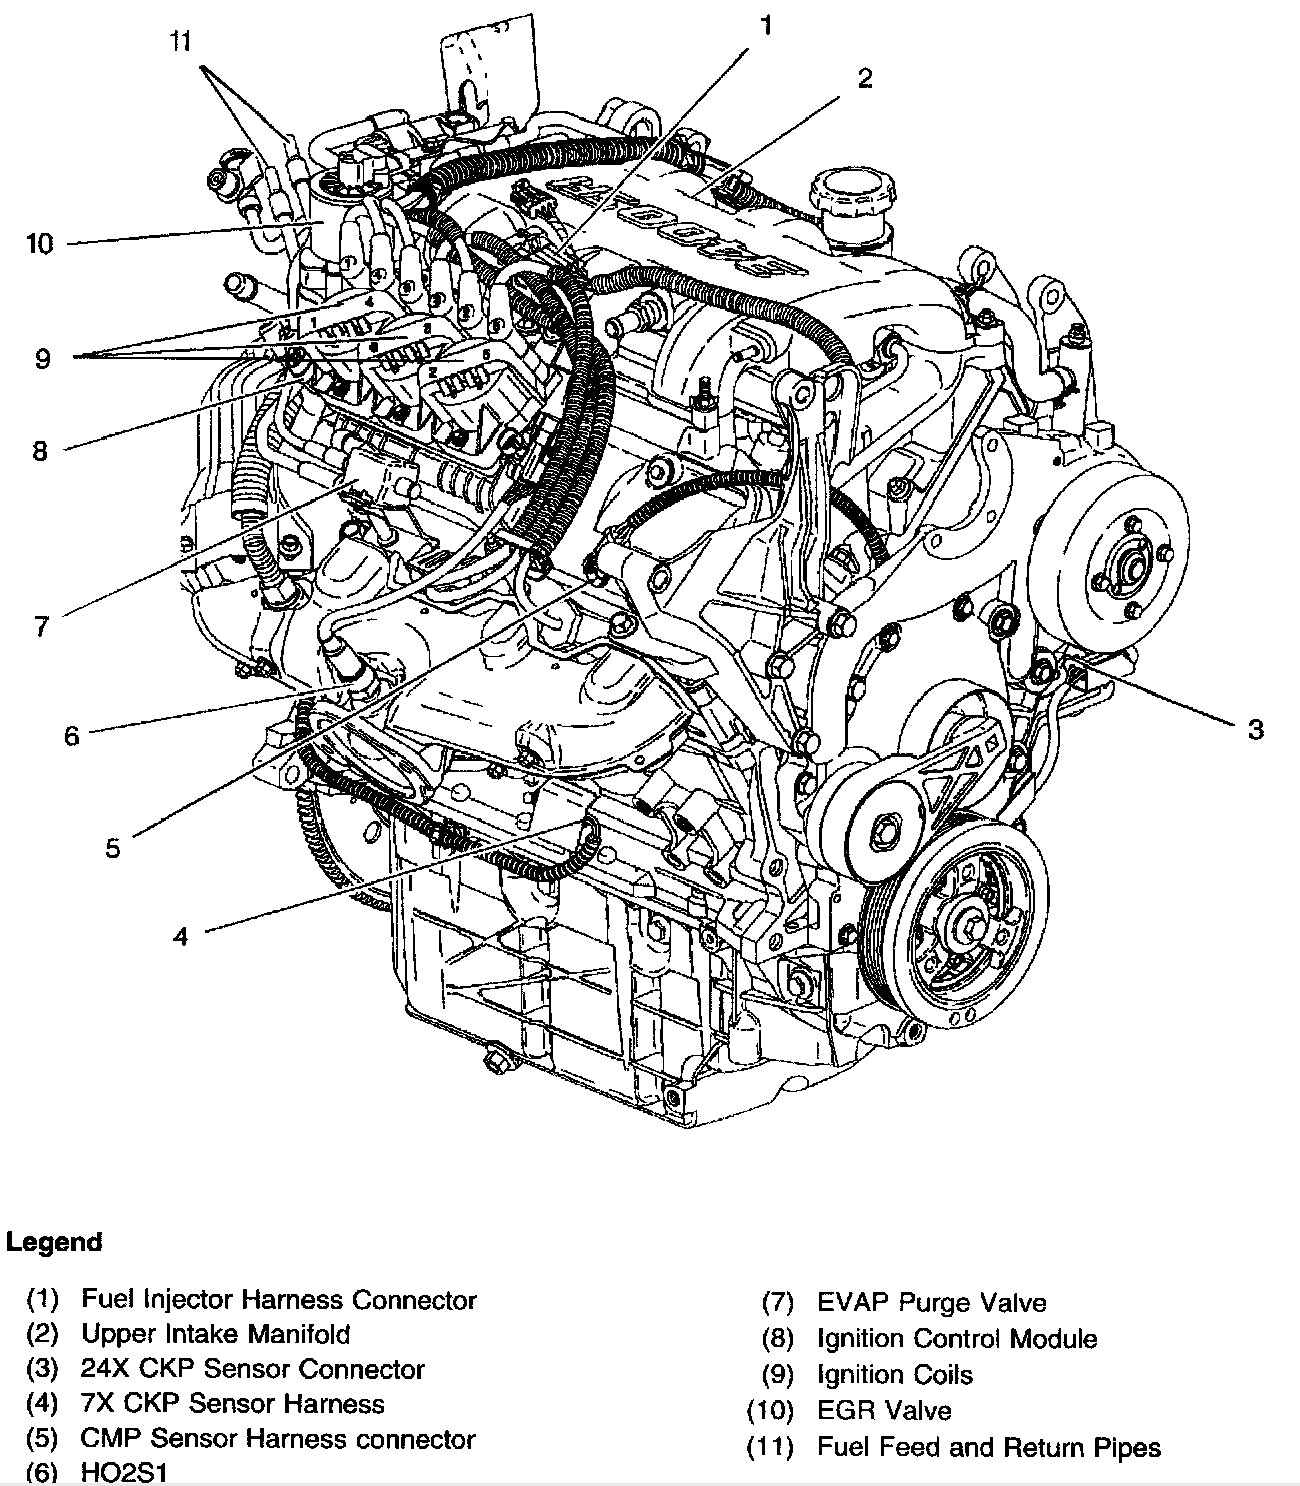 Chevy Cavalier Engine Diagram 3400 Front Diagrams Pinterest Of